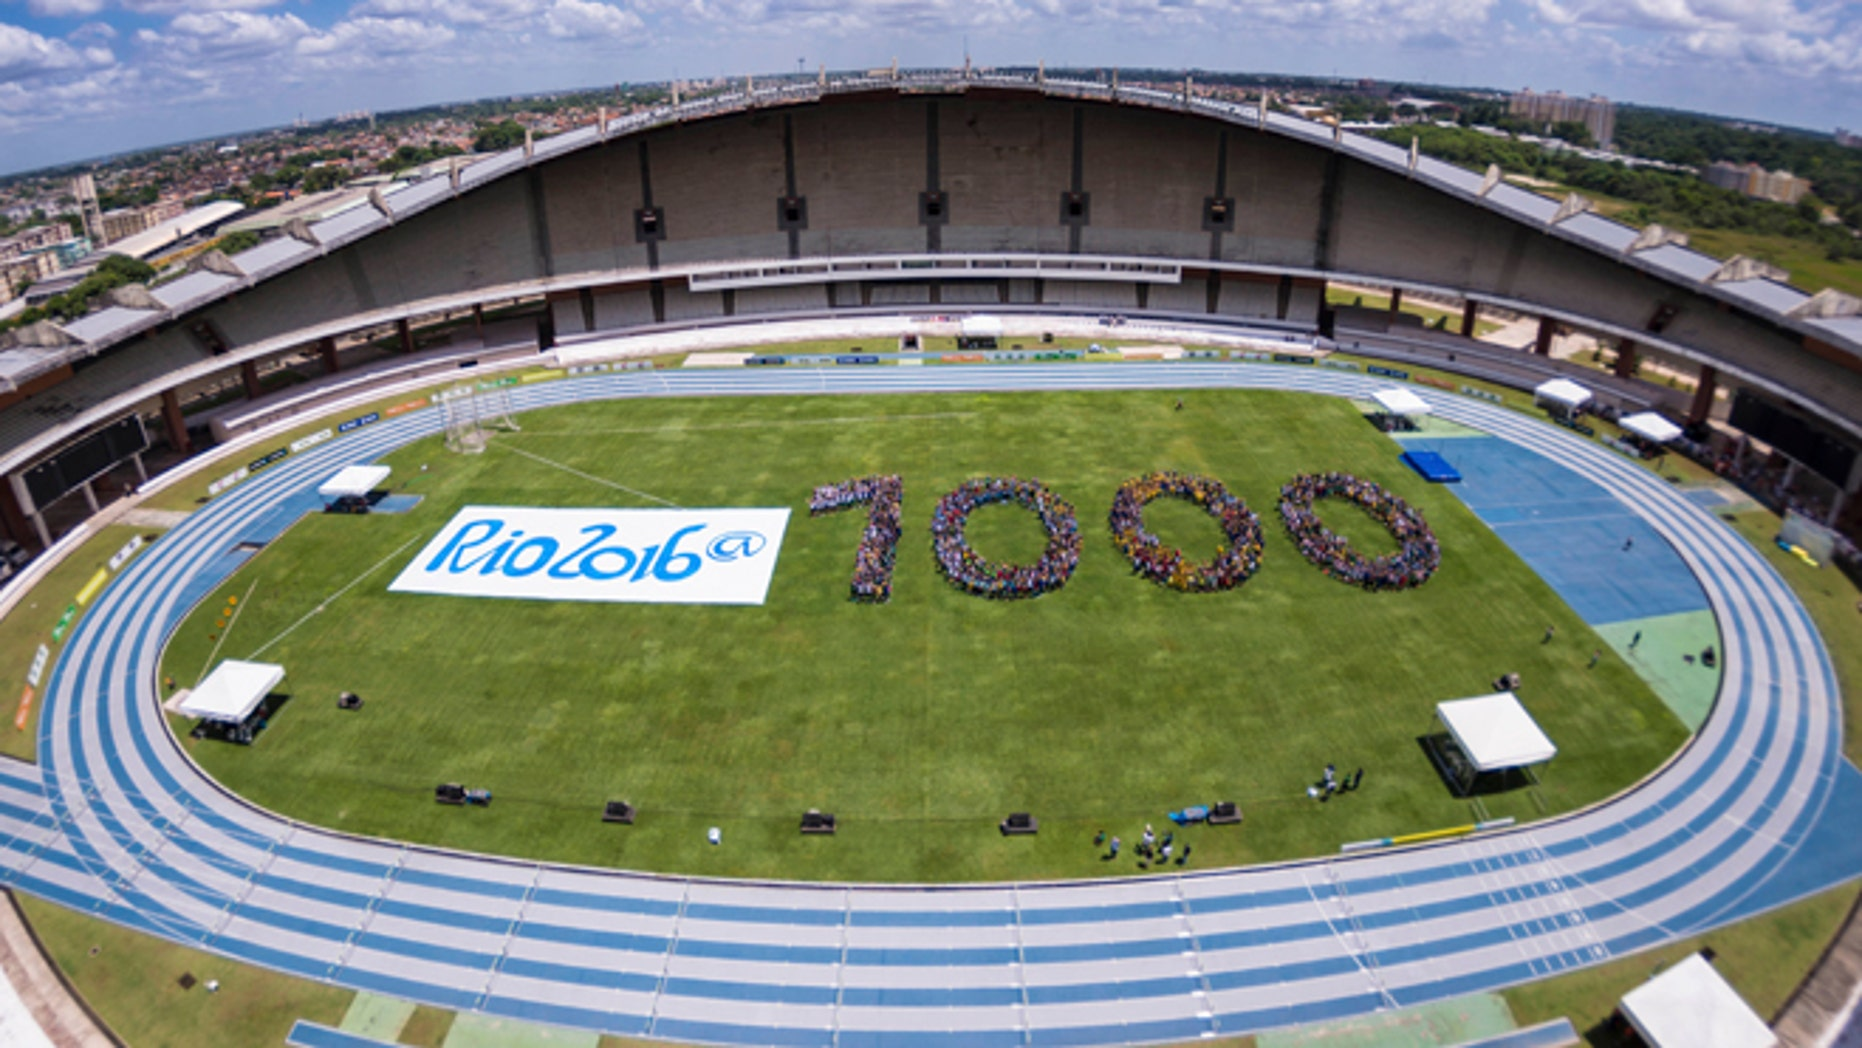 In this photo released by Rio 2016 Organizing Committee for the Olympic and Paralympic Games, youths form the number 1,000 to mark the number of days before the start of the Rio 2016 Olympic Games inside Mangueirao stadium in Belém, Brazil, Friday, Nov. 8, 2013. (AP Photo/Alex Ferro, Rio 2016 Organizing Committee for the Olympic and Paralympic Games)